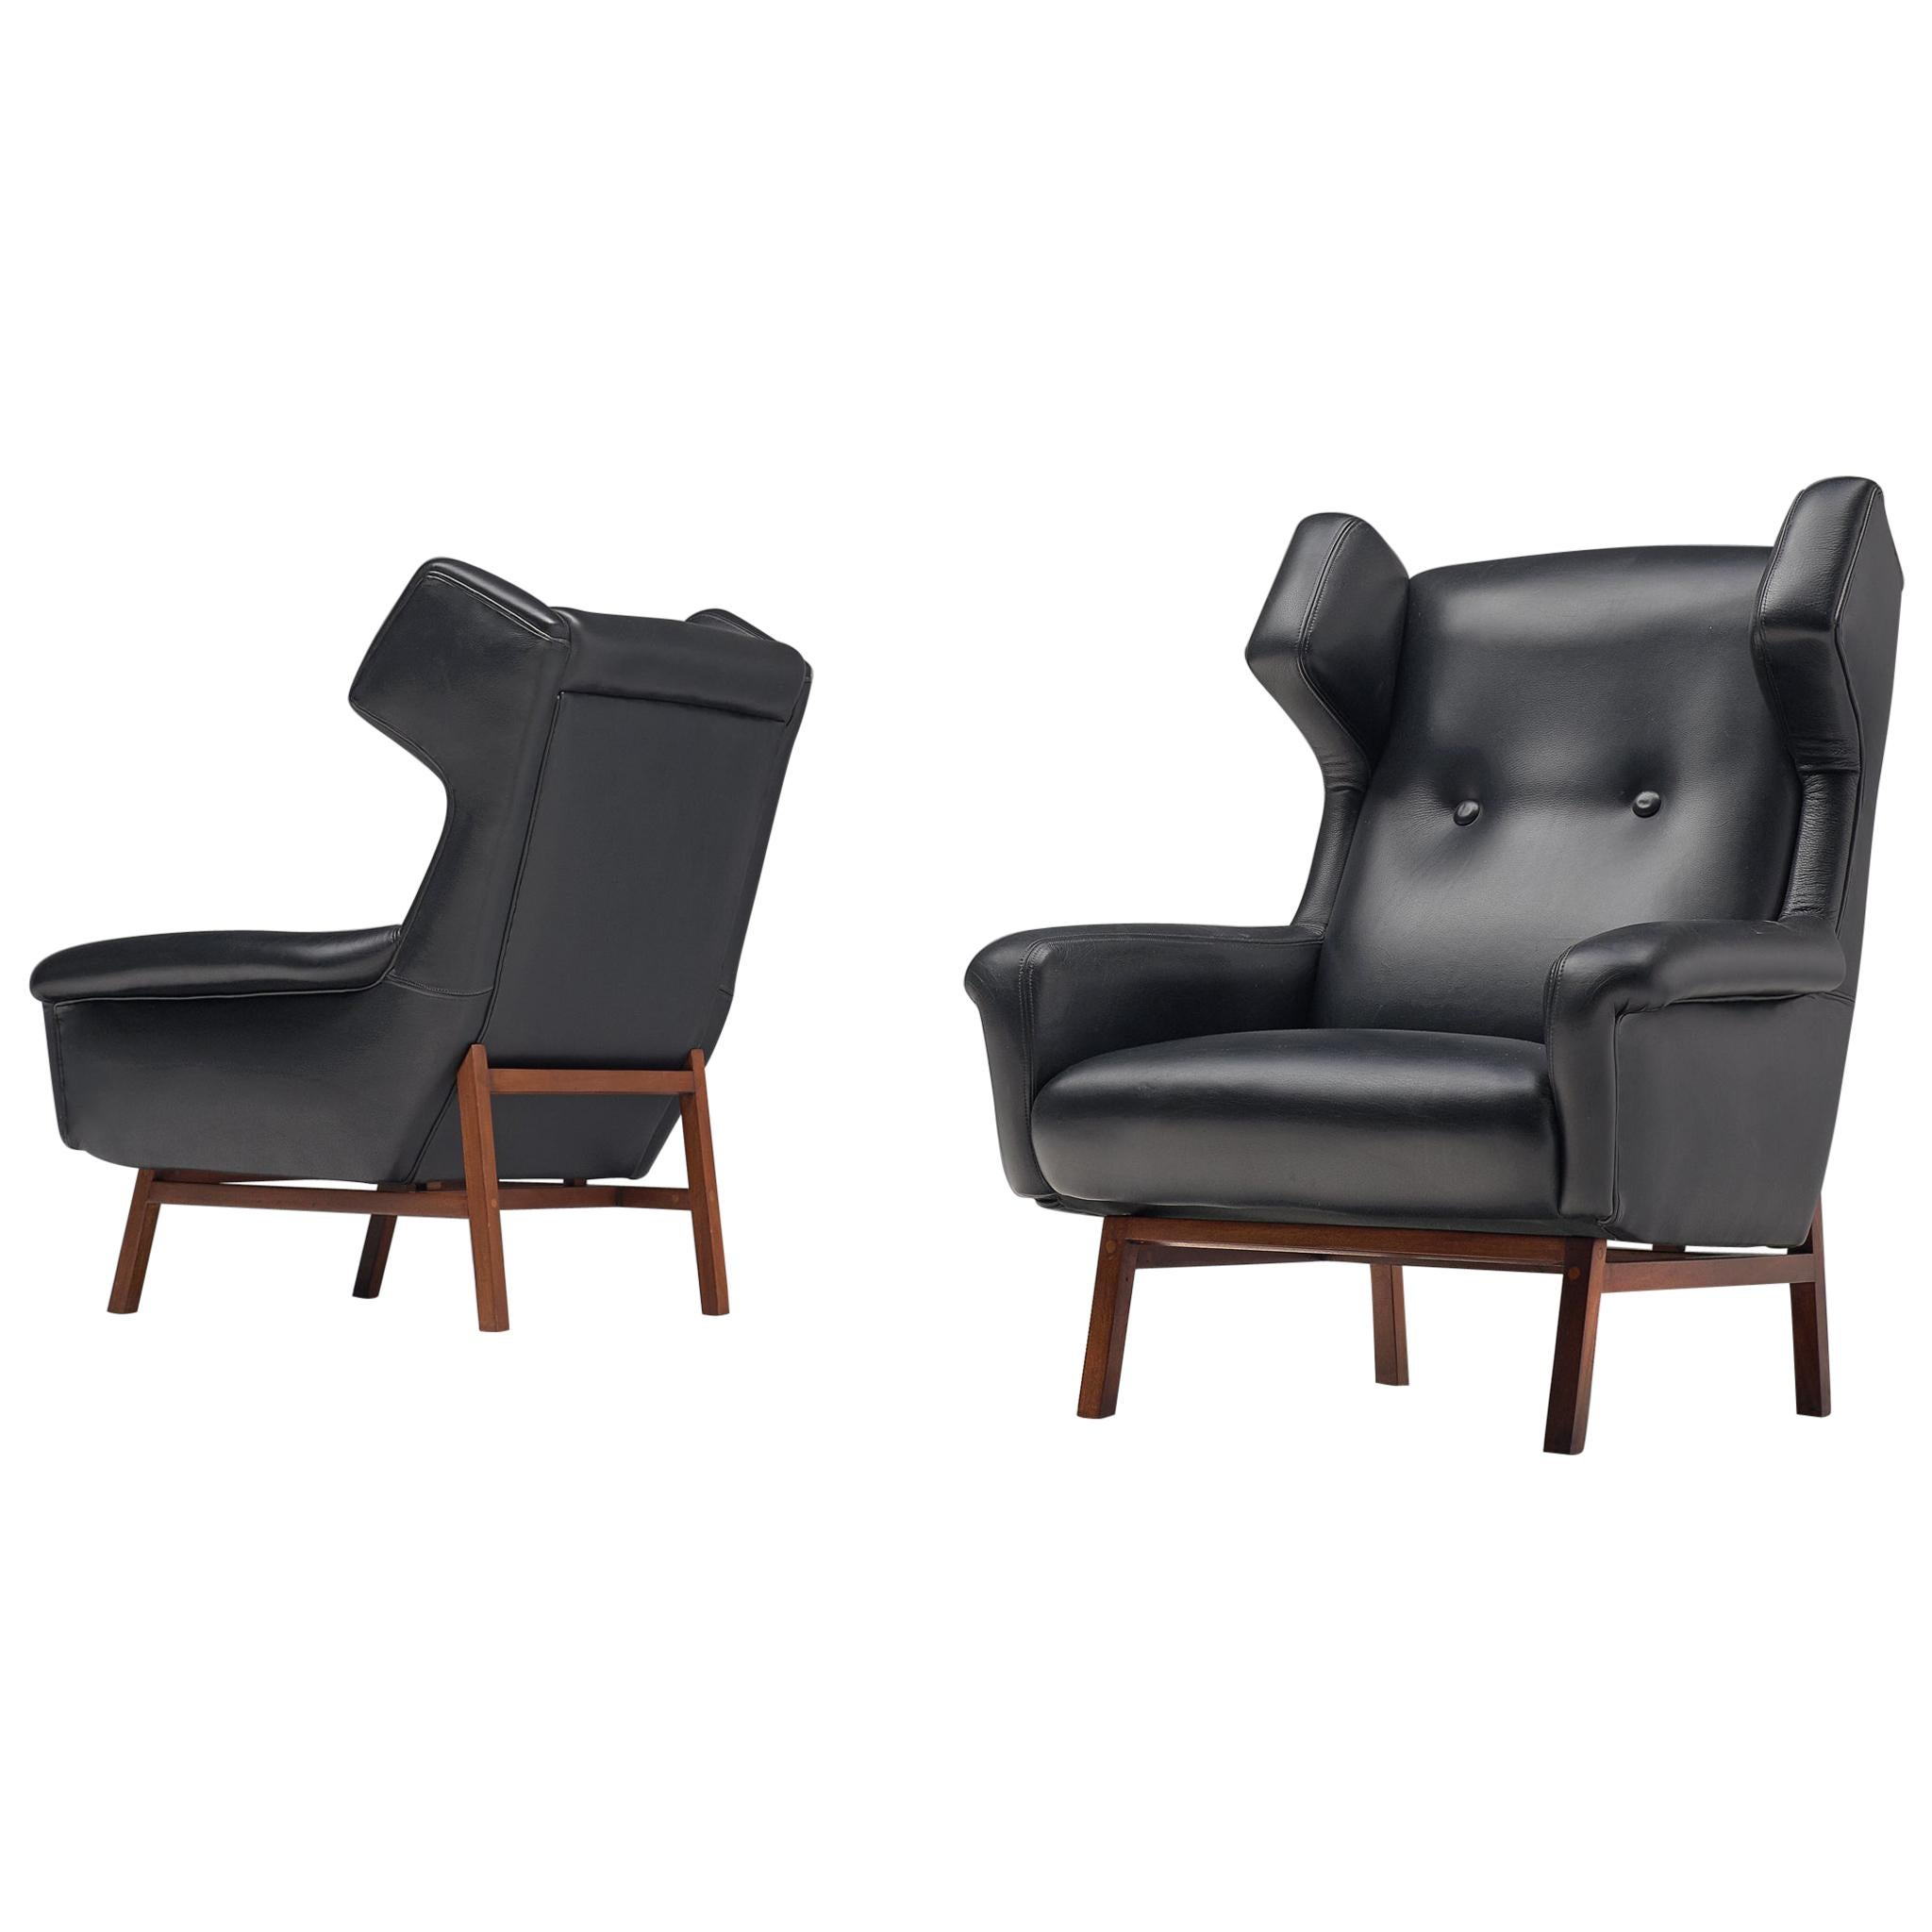 Pair of Italian Wingback Lounge Chairs in Black Leather